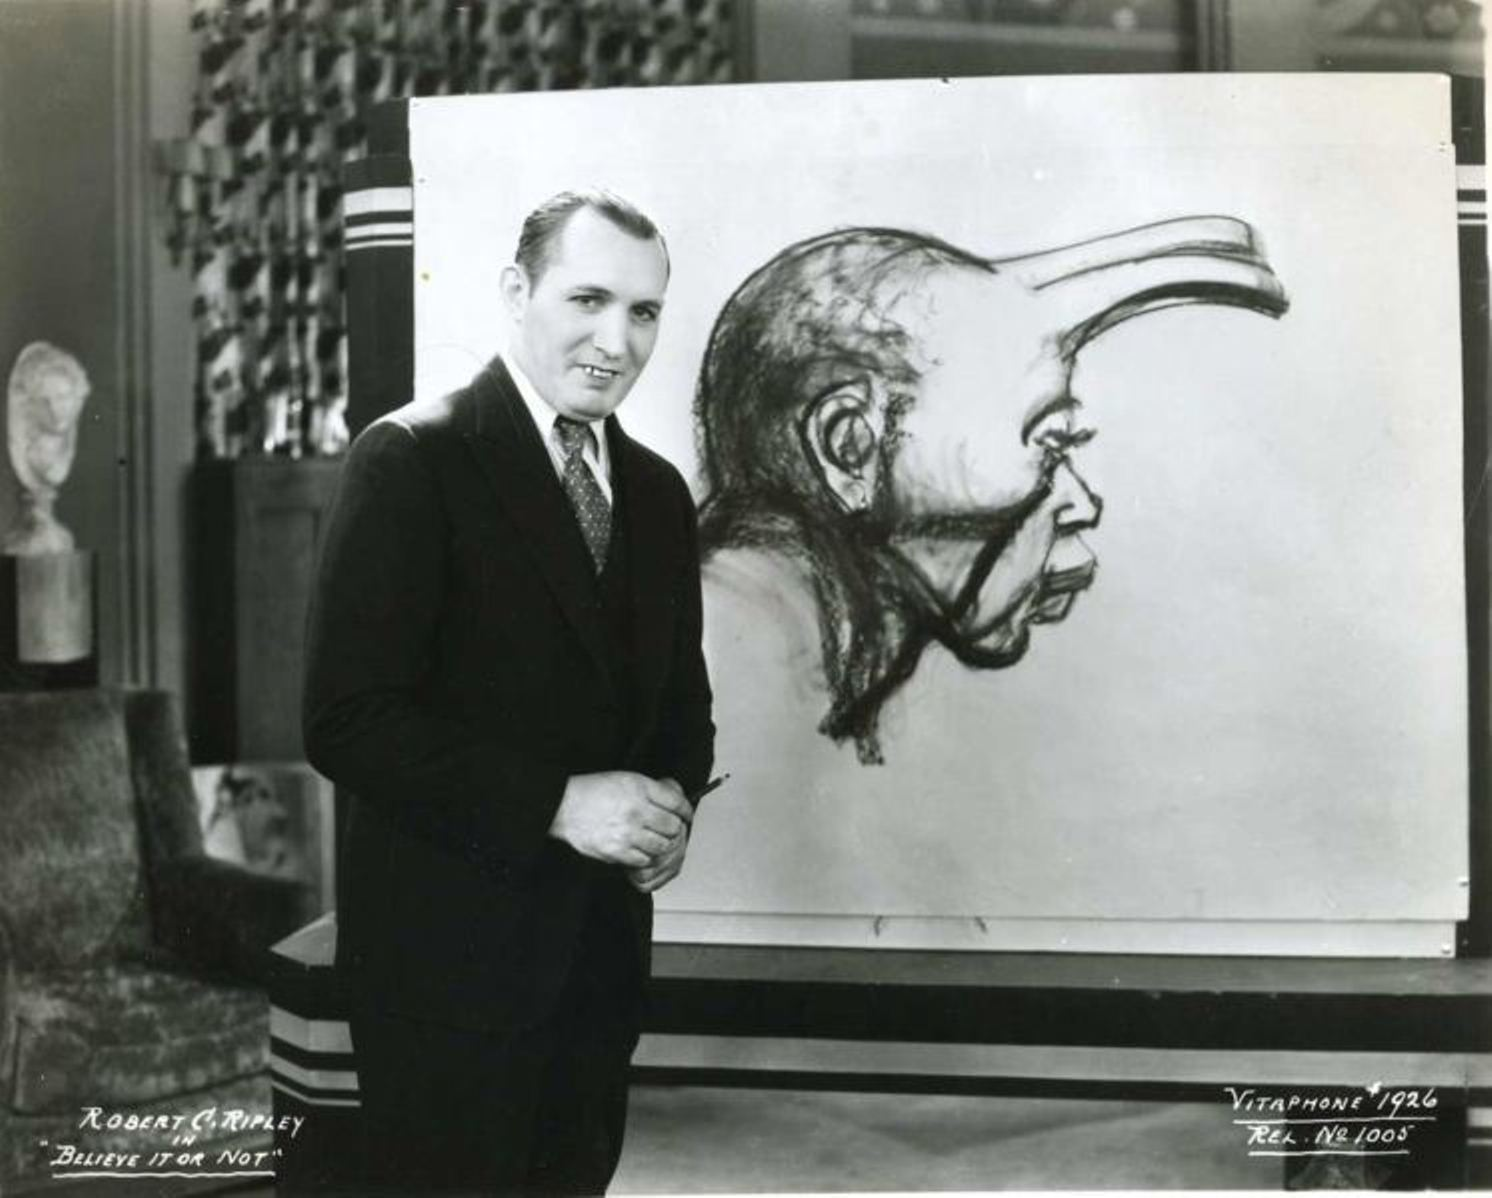 Robert Ripley in Believe It Or Not